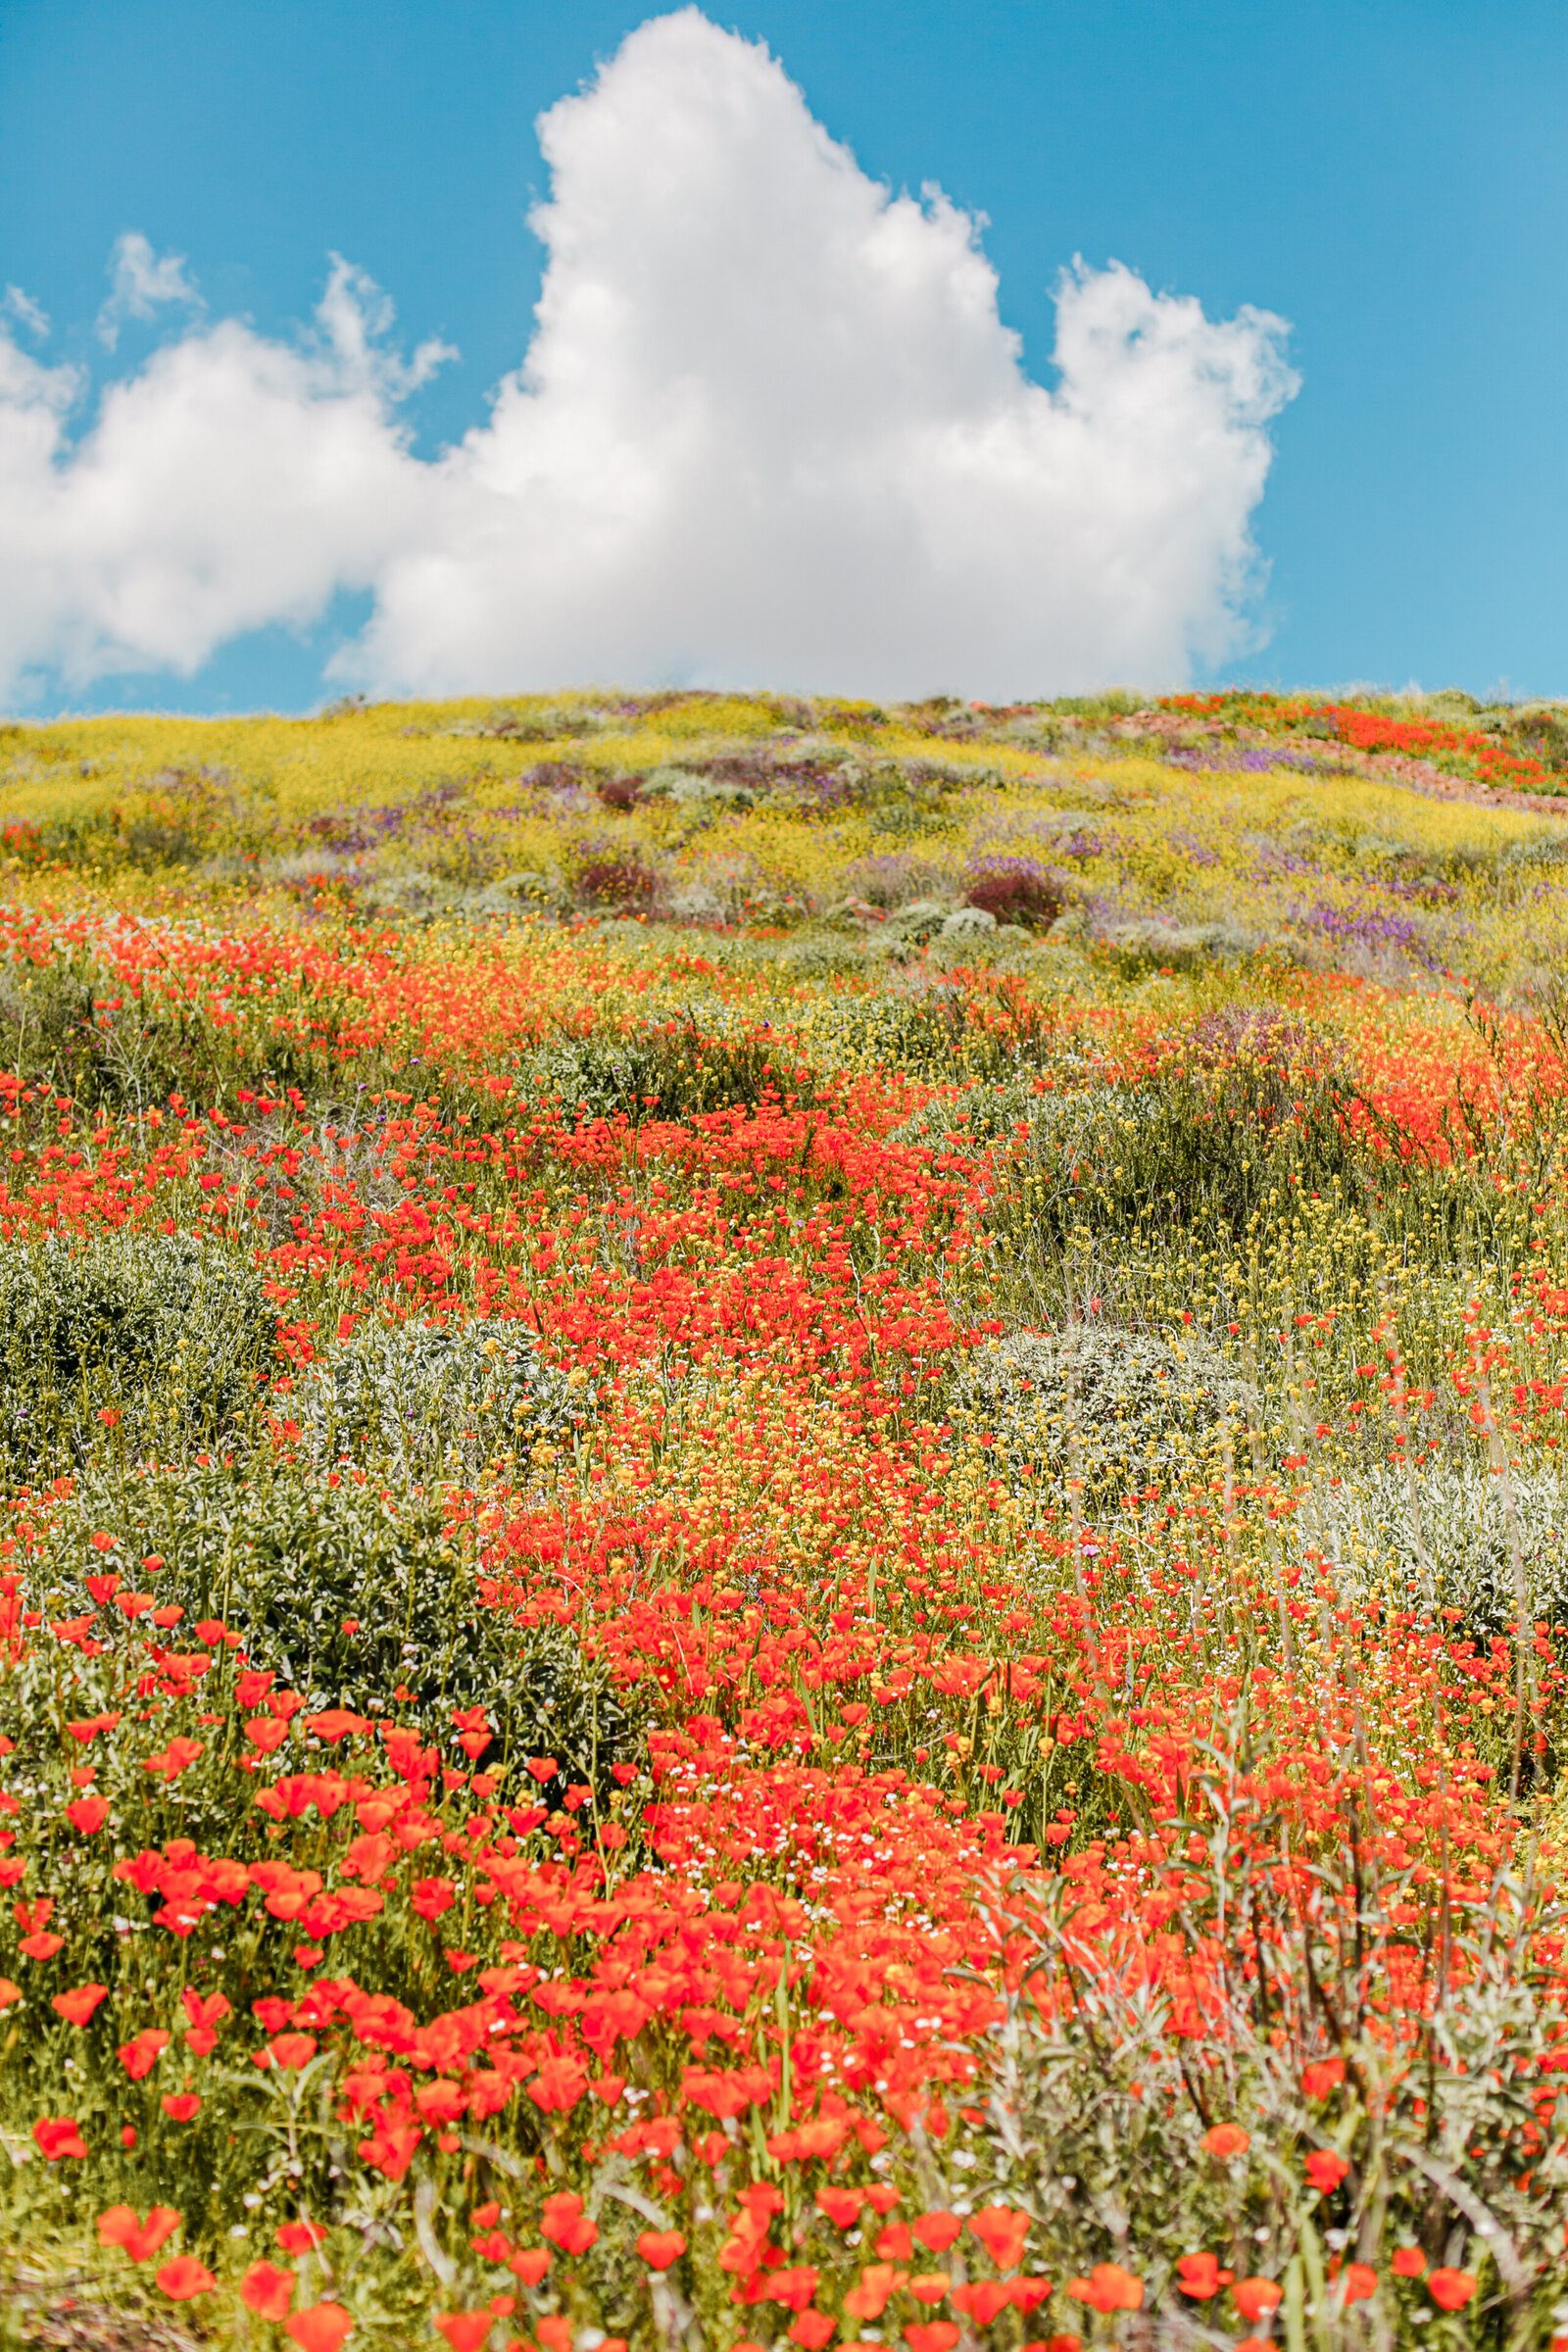 053-KBP-superbloom-Poppy-Fields-002